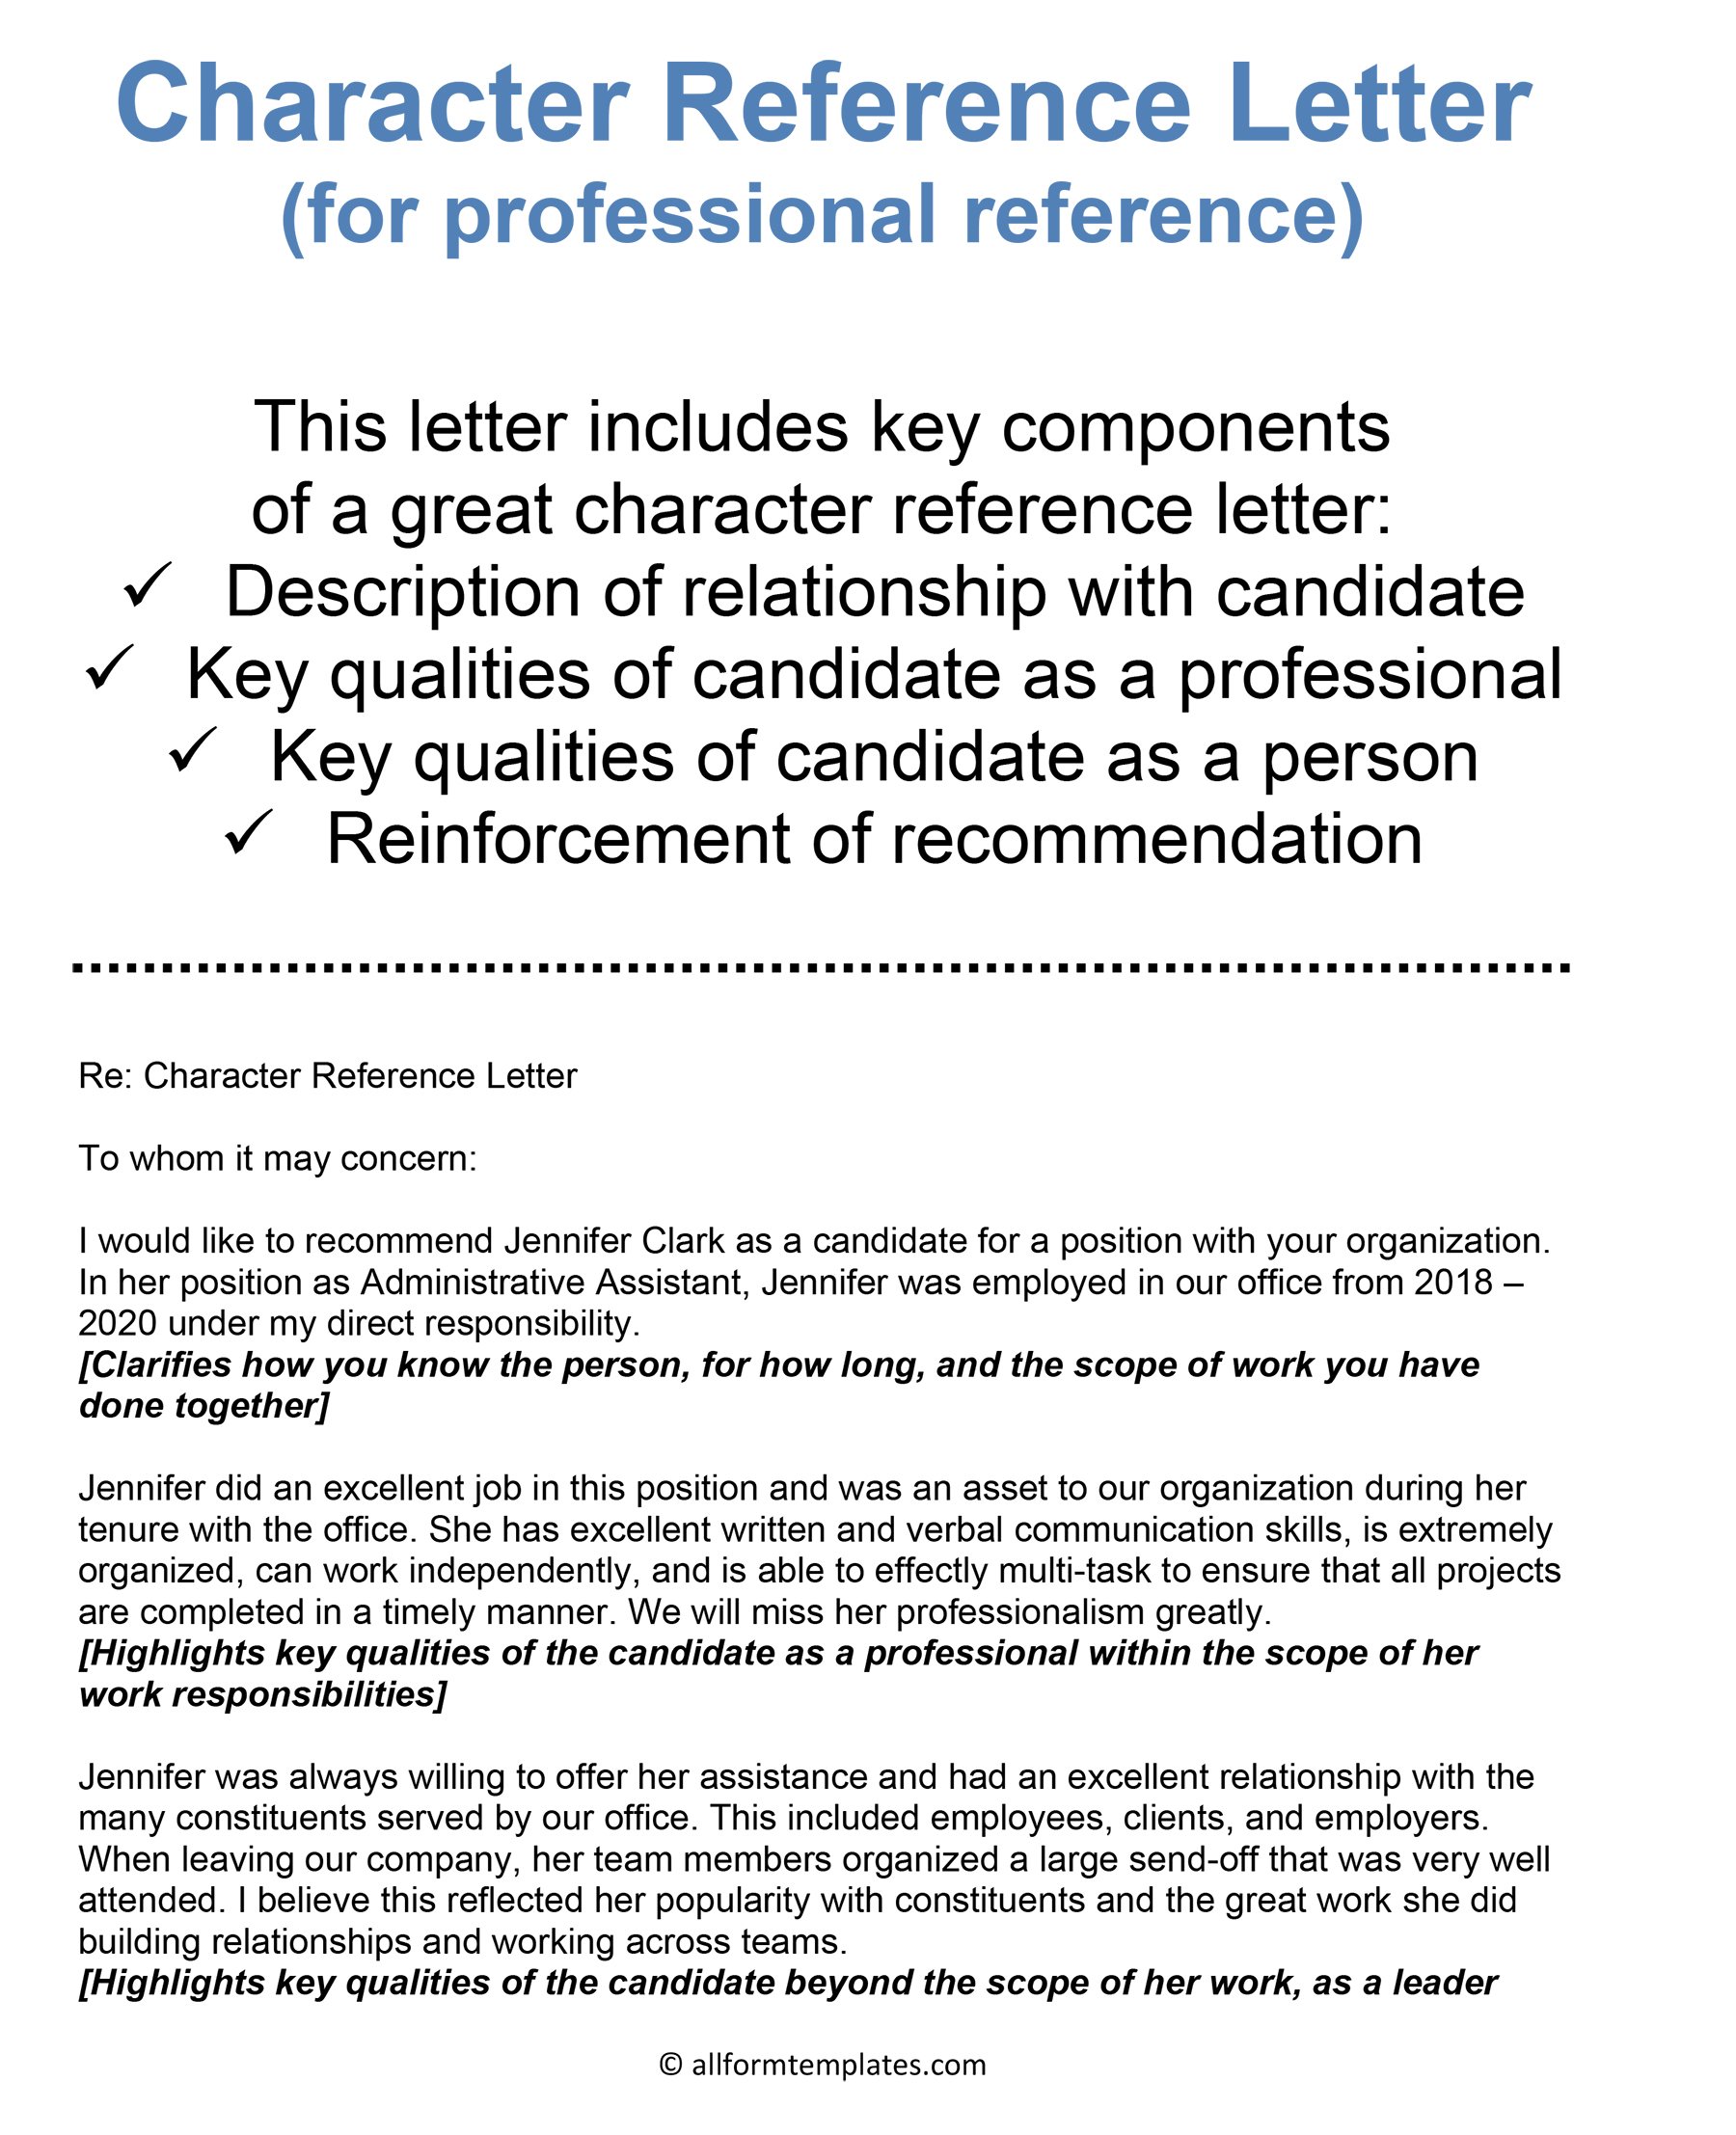 Professional-character-reference-letter-04-HD